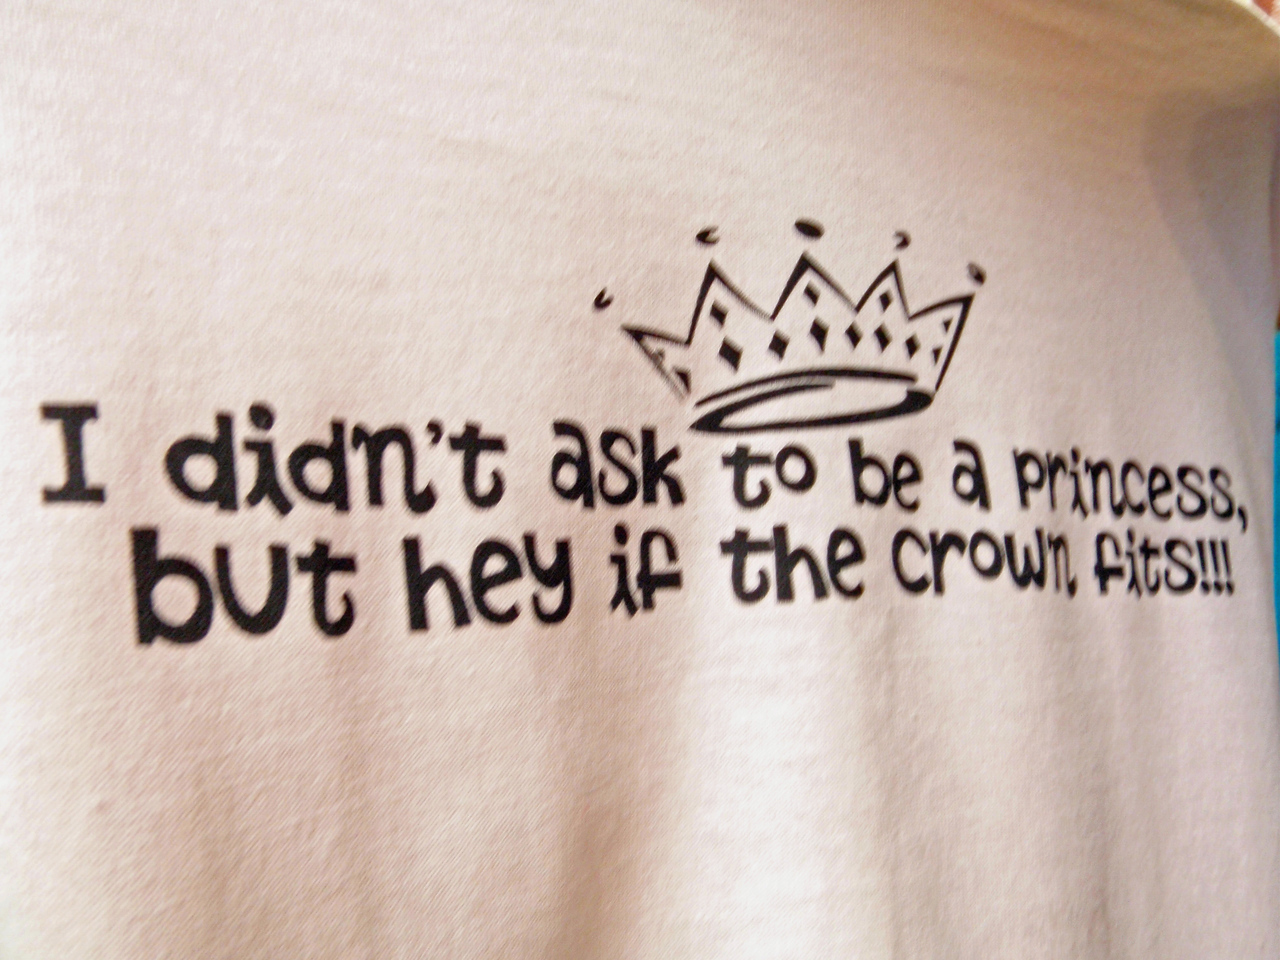 Reminded me of my Twitterqueens!